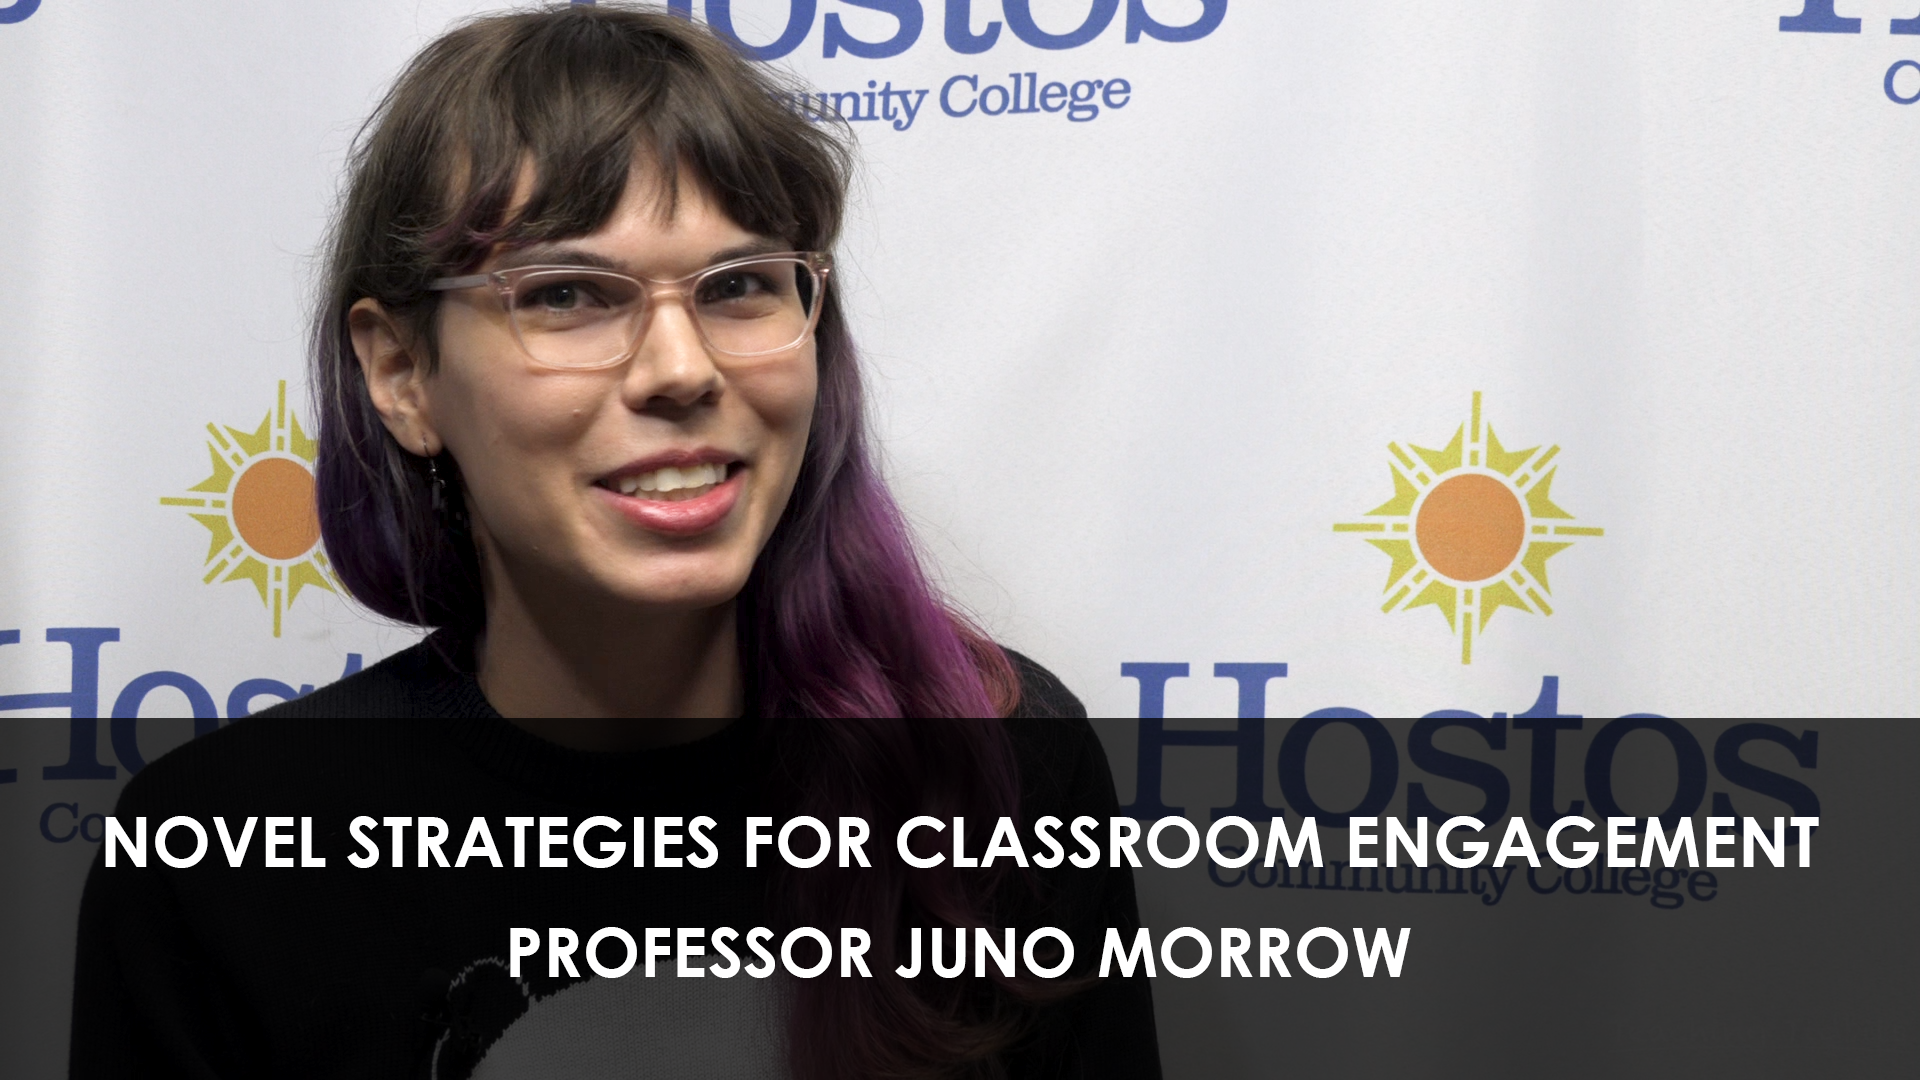 Novel Strategies for Classroom Engagement Prof. Juno Morrow